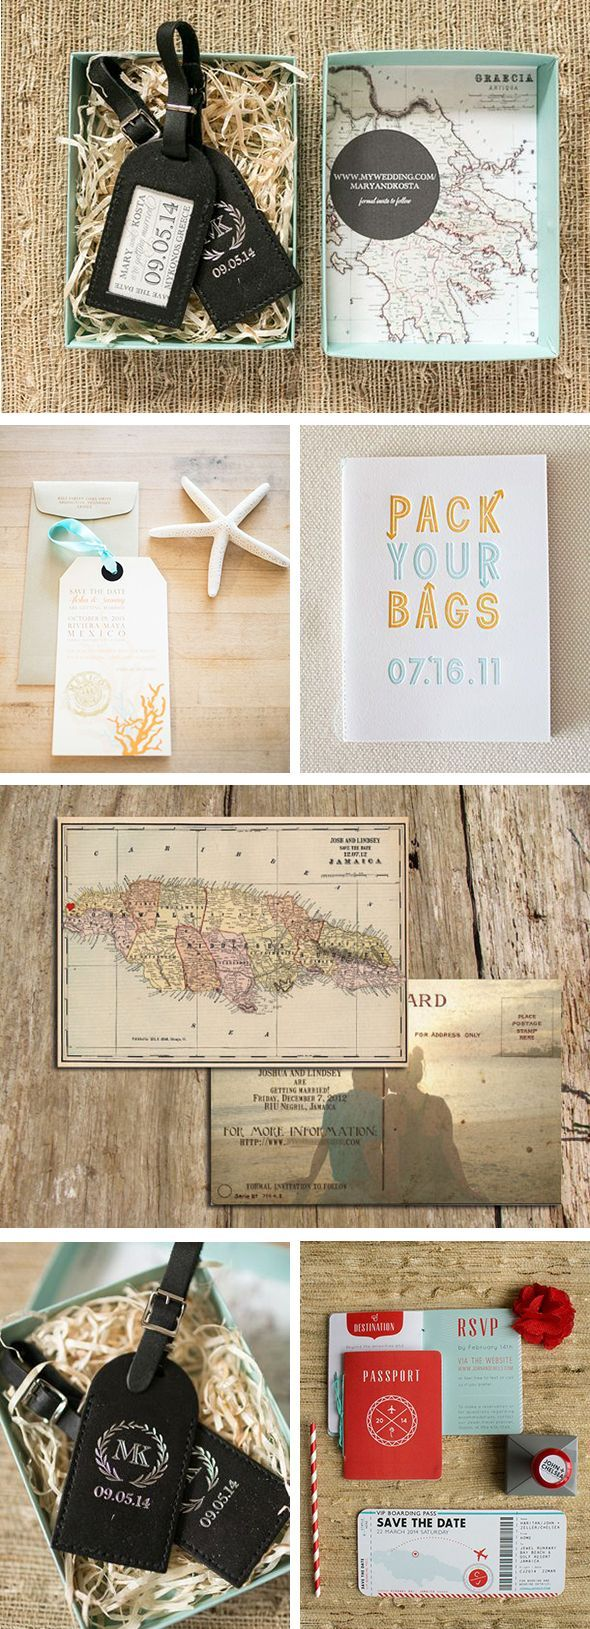 Destination wedding save the dates - love these ideas!